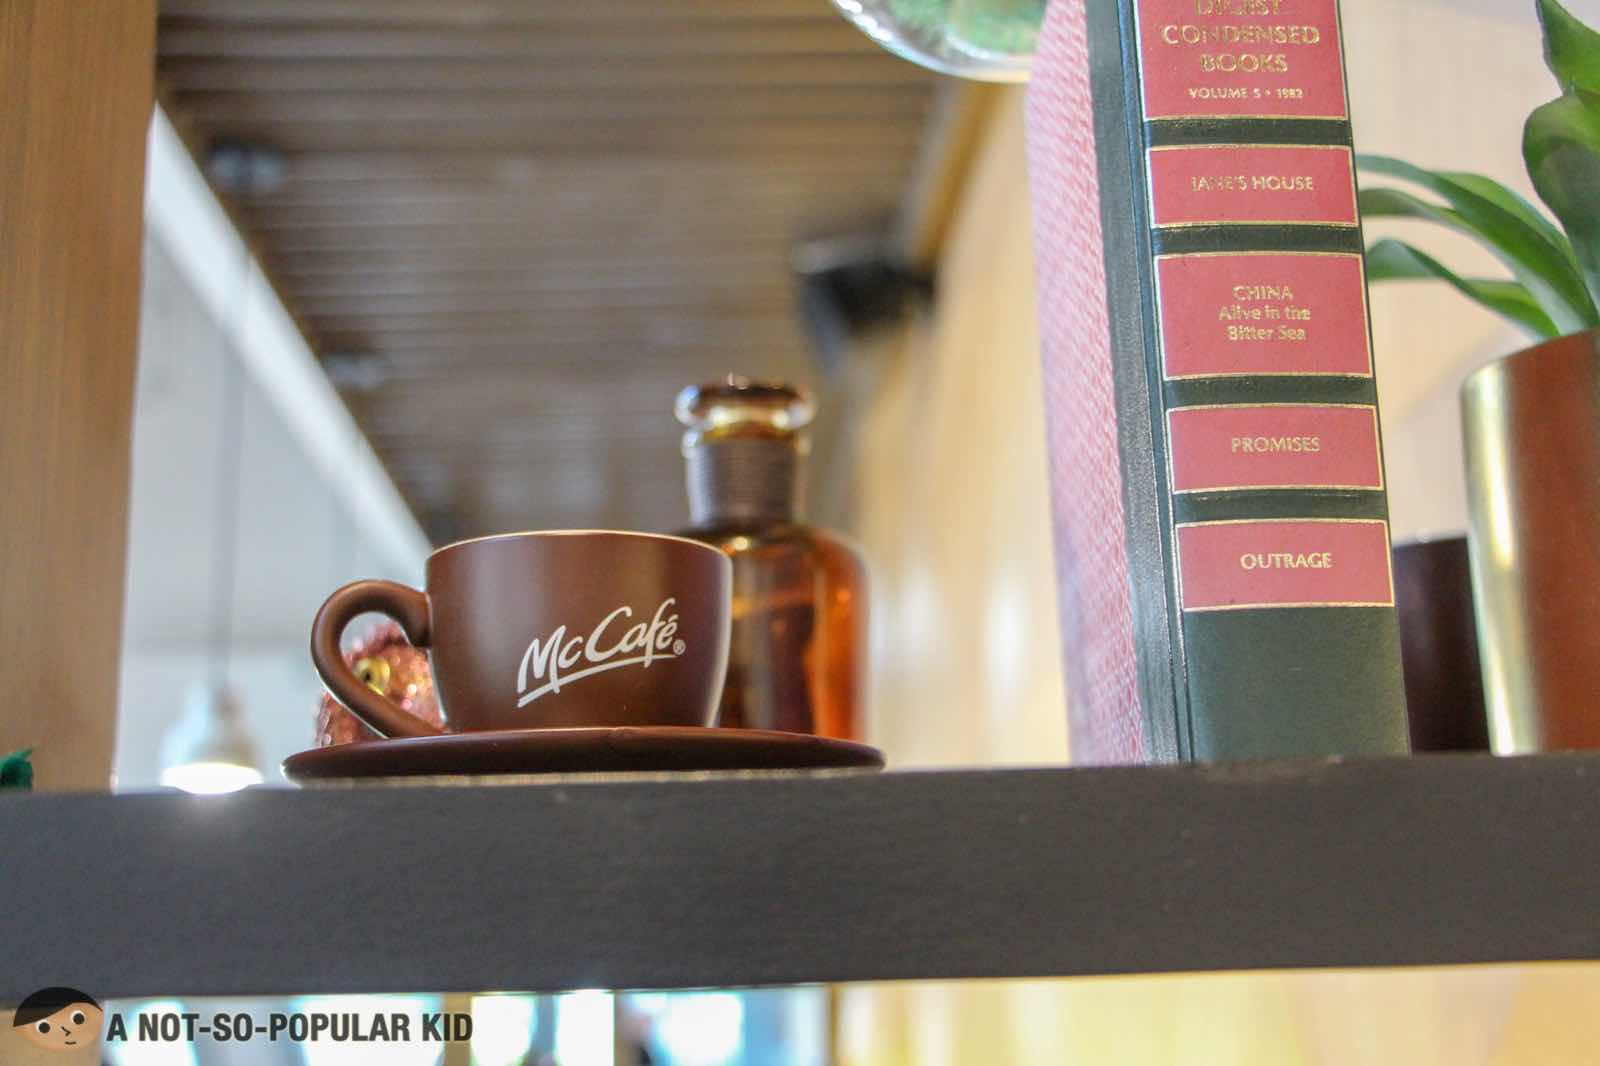 McCafe interior designs and ornament